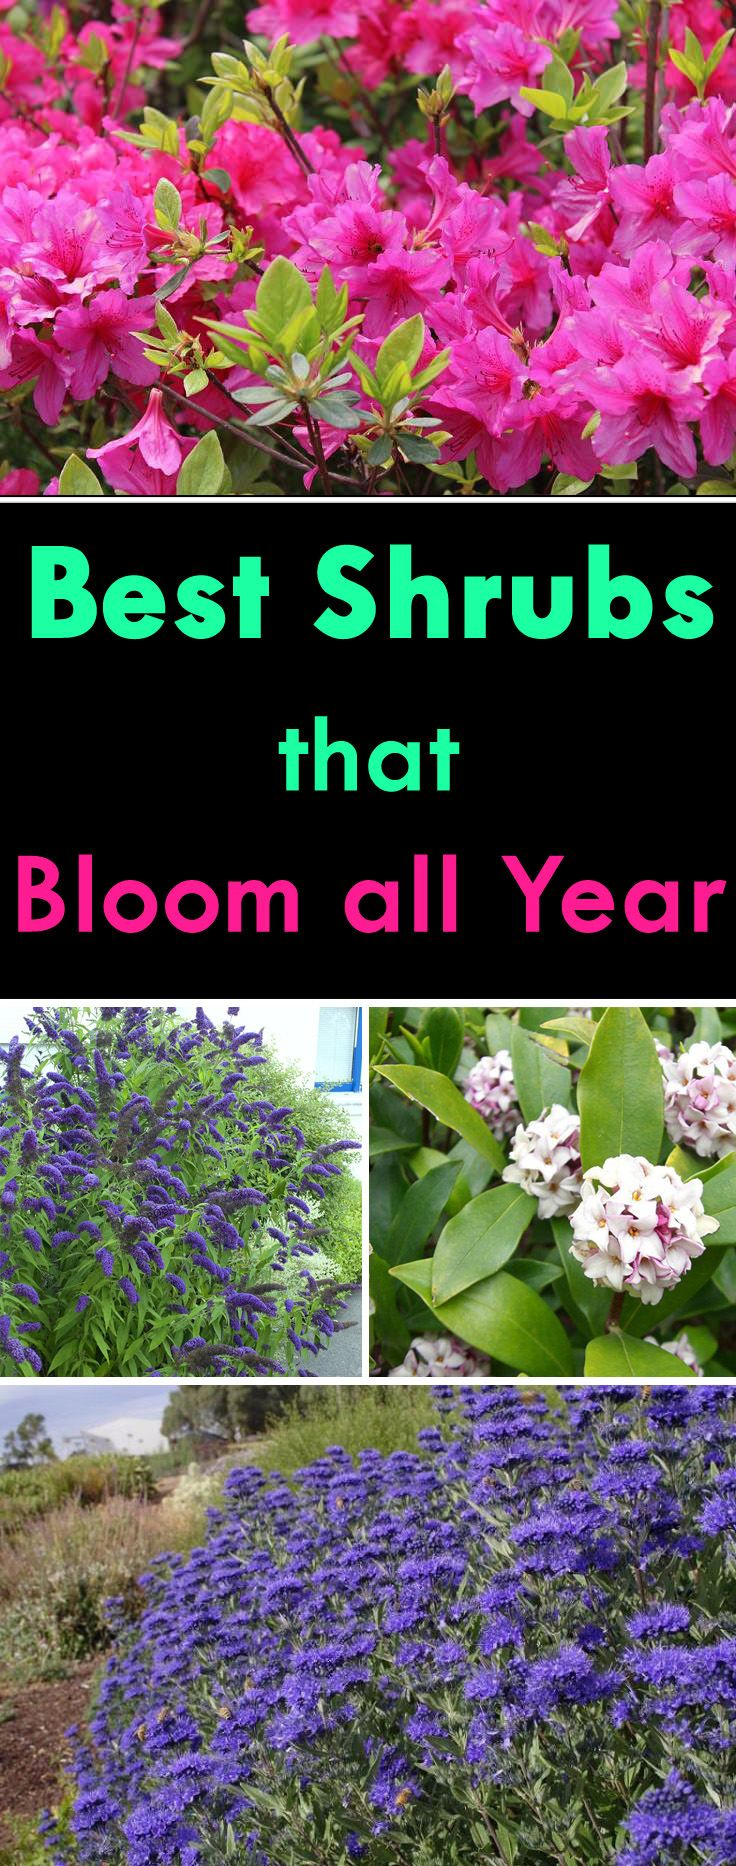 Flower garden design ideas - Best Shrubs That Bloom All Year